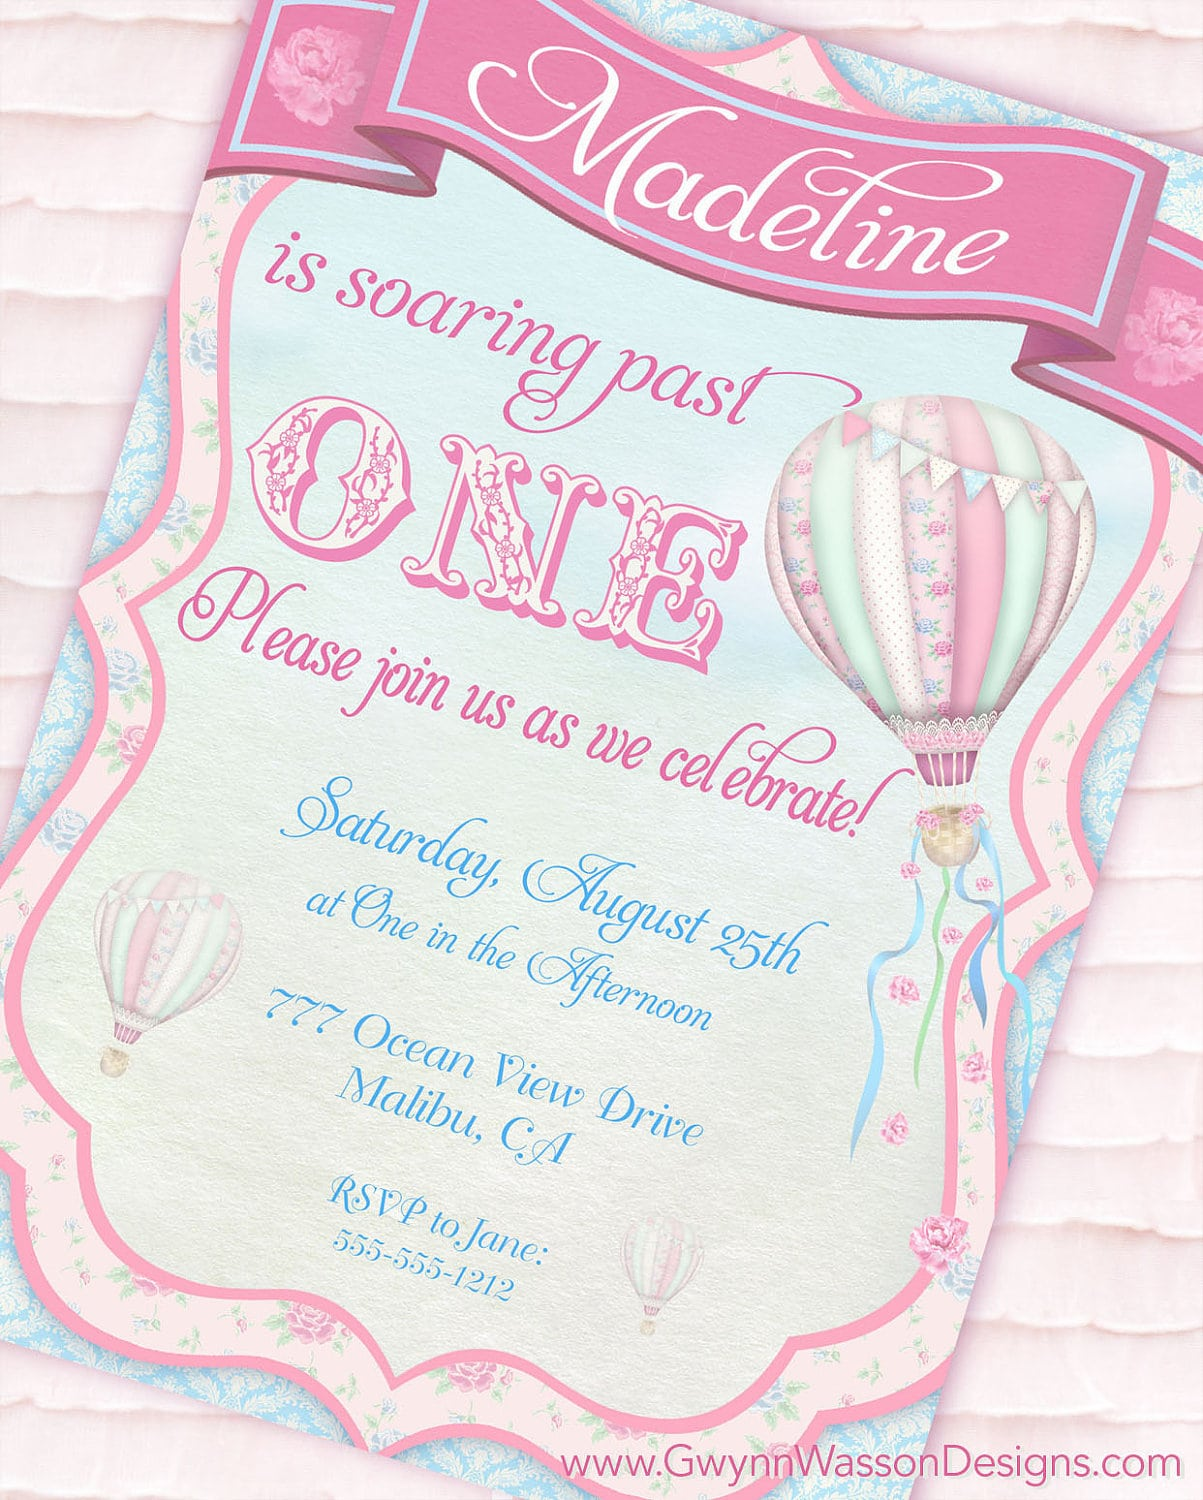 Hot Air Balloon Party Invitation Up Up And Away Shabby Chic